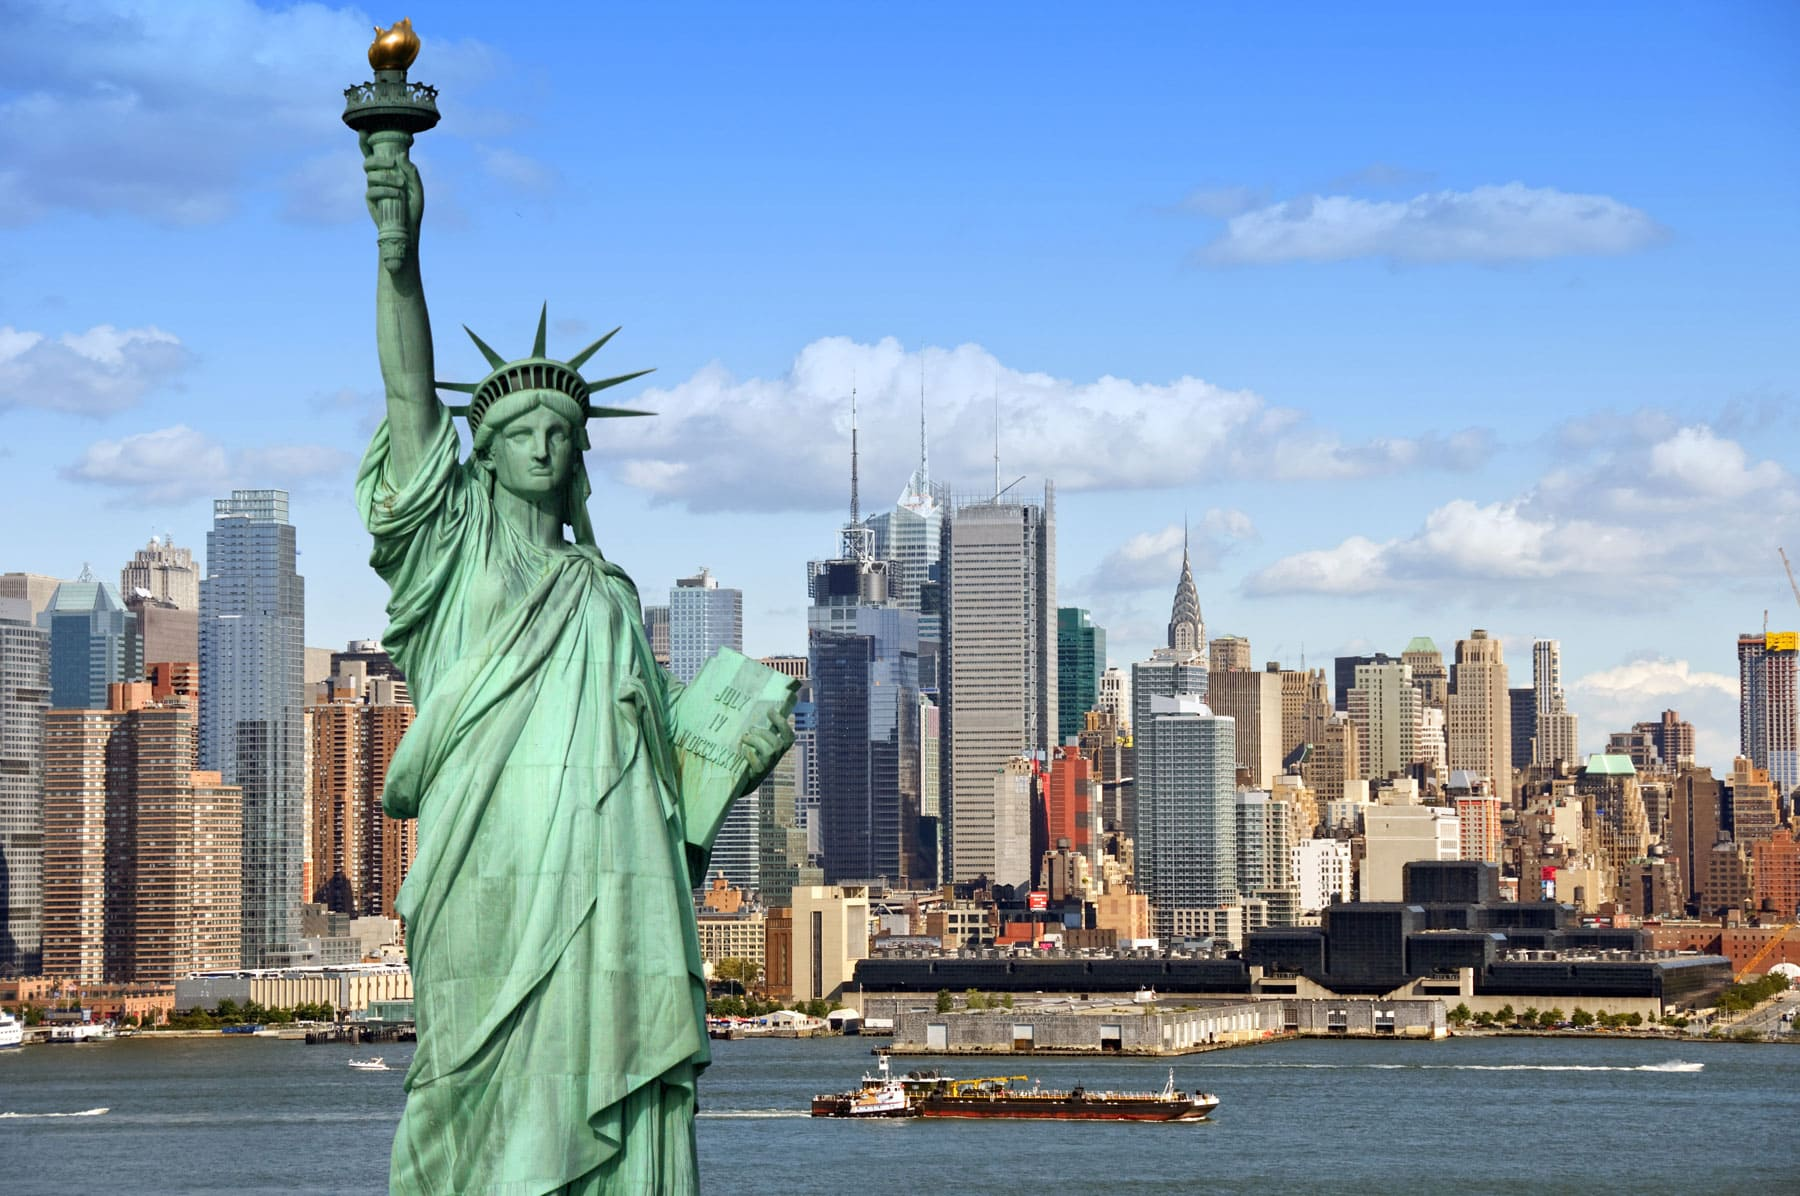 Travel Restrictions to USA and North America due to COVID